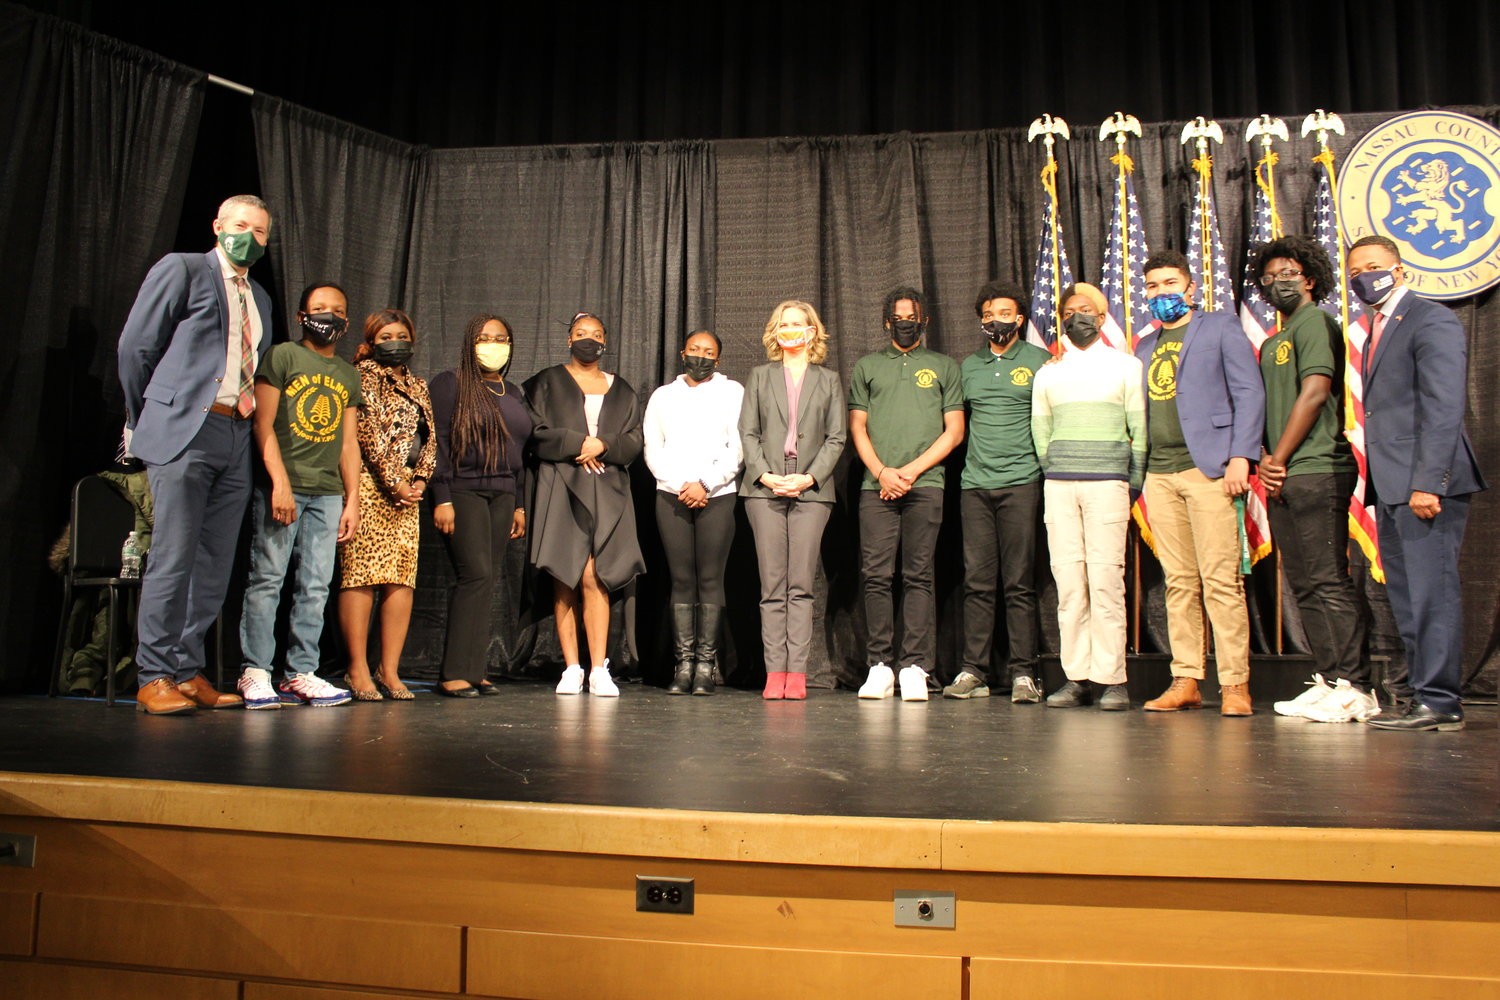 Curran, center, took a photo with the Elmont Leading Ladies and the Men of Elmont, who discussed police reform with county officials. They were with Elmont Memorial High School Principal Kevin Dougherty, left.